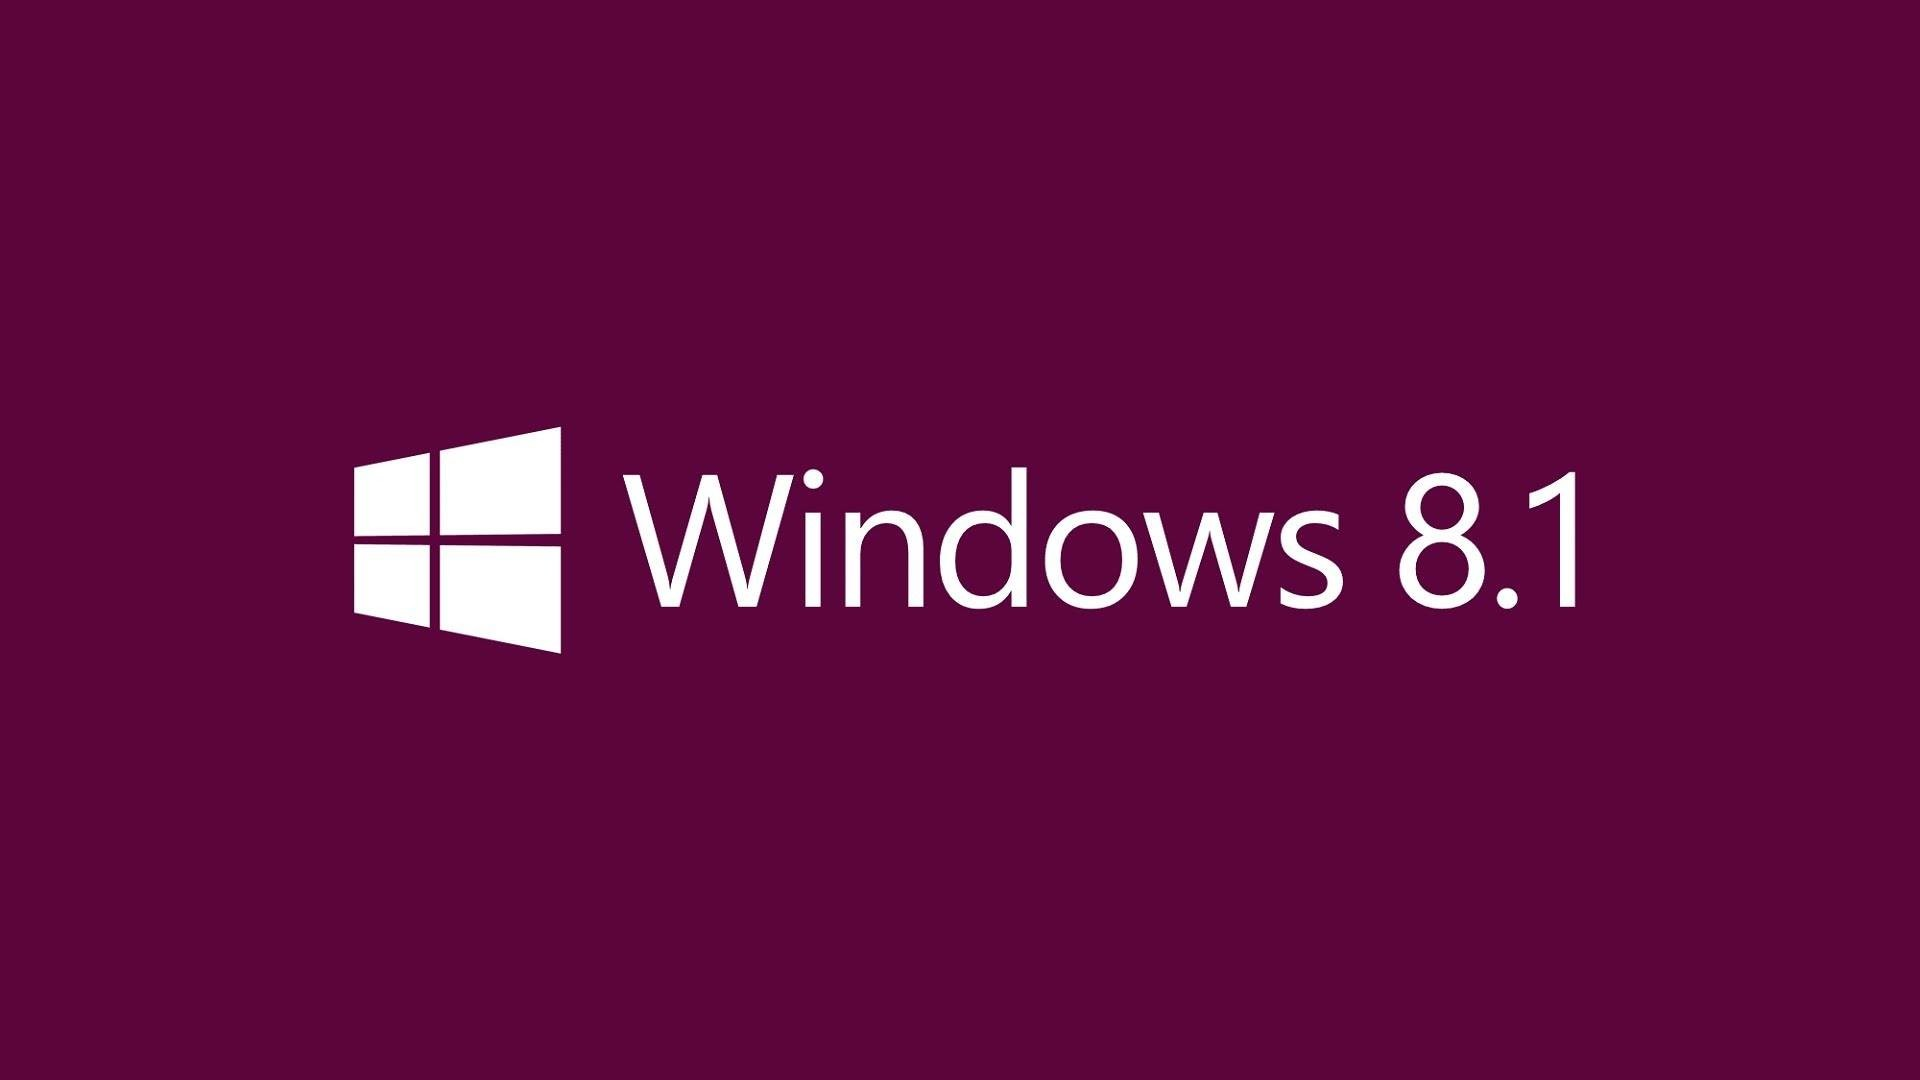 Windows 81 Wallpaper Hd 1080p 53 Images